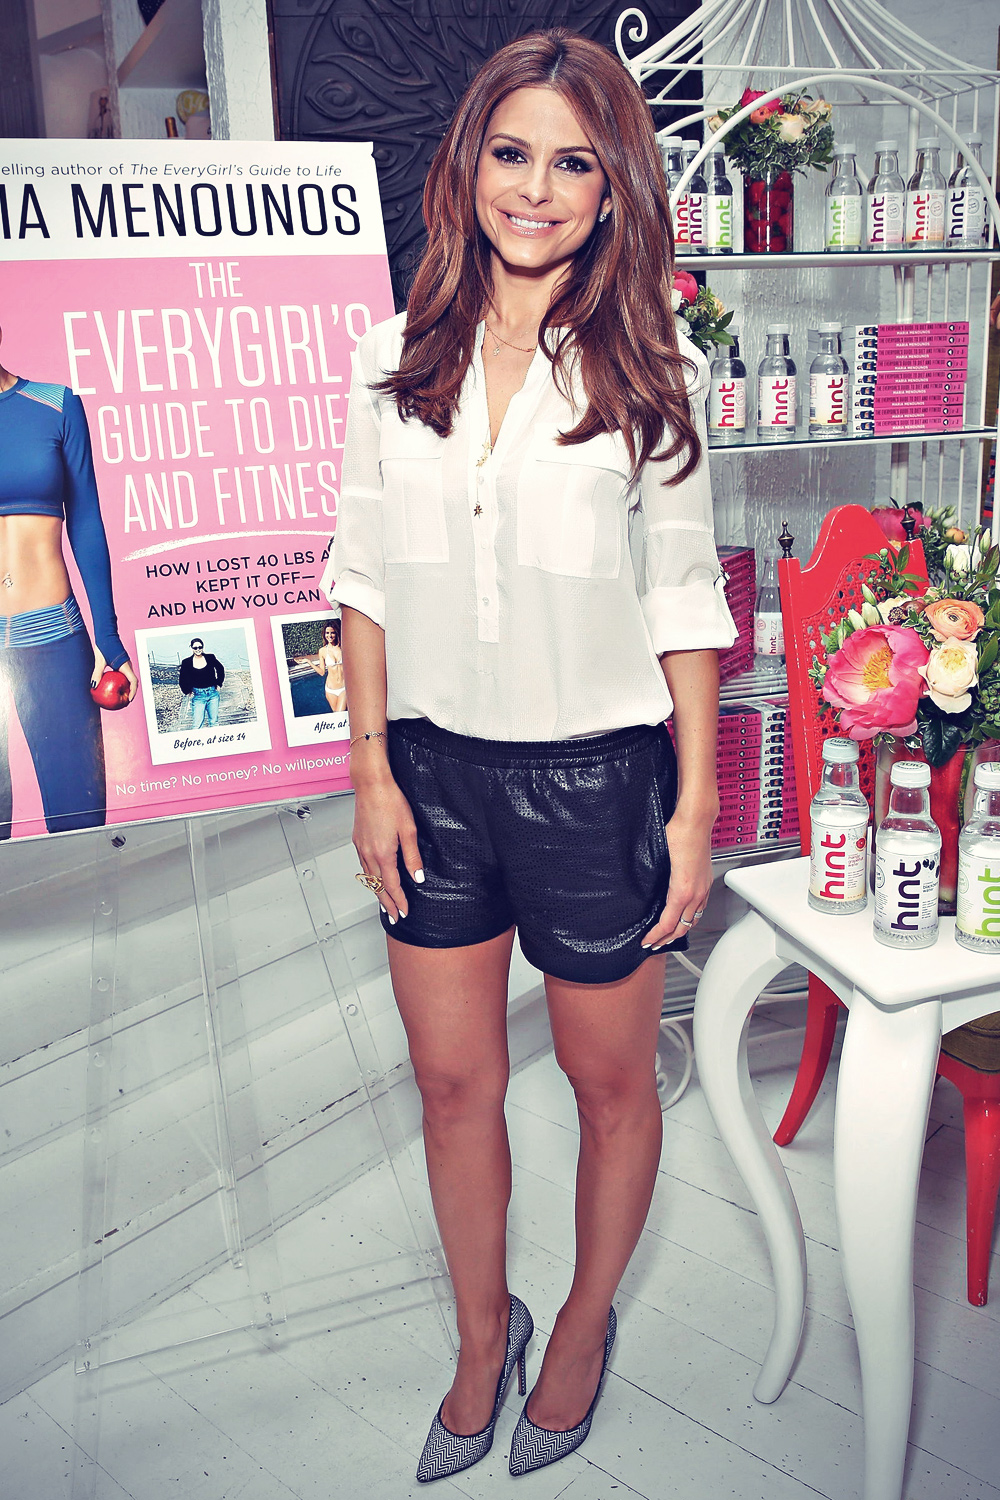 Maria Menounos attends The Everygirl Guide To Diet & Fitness launch party